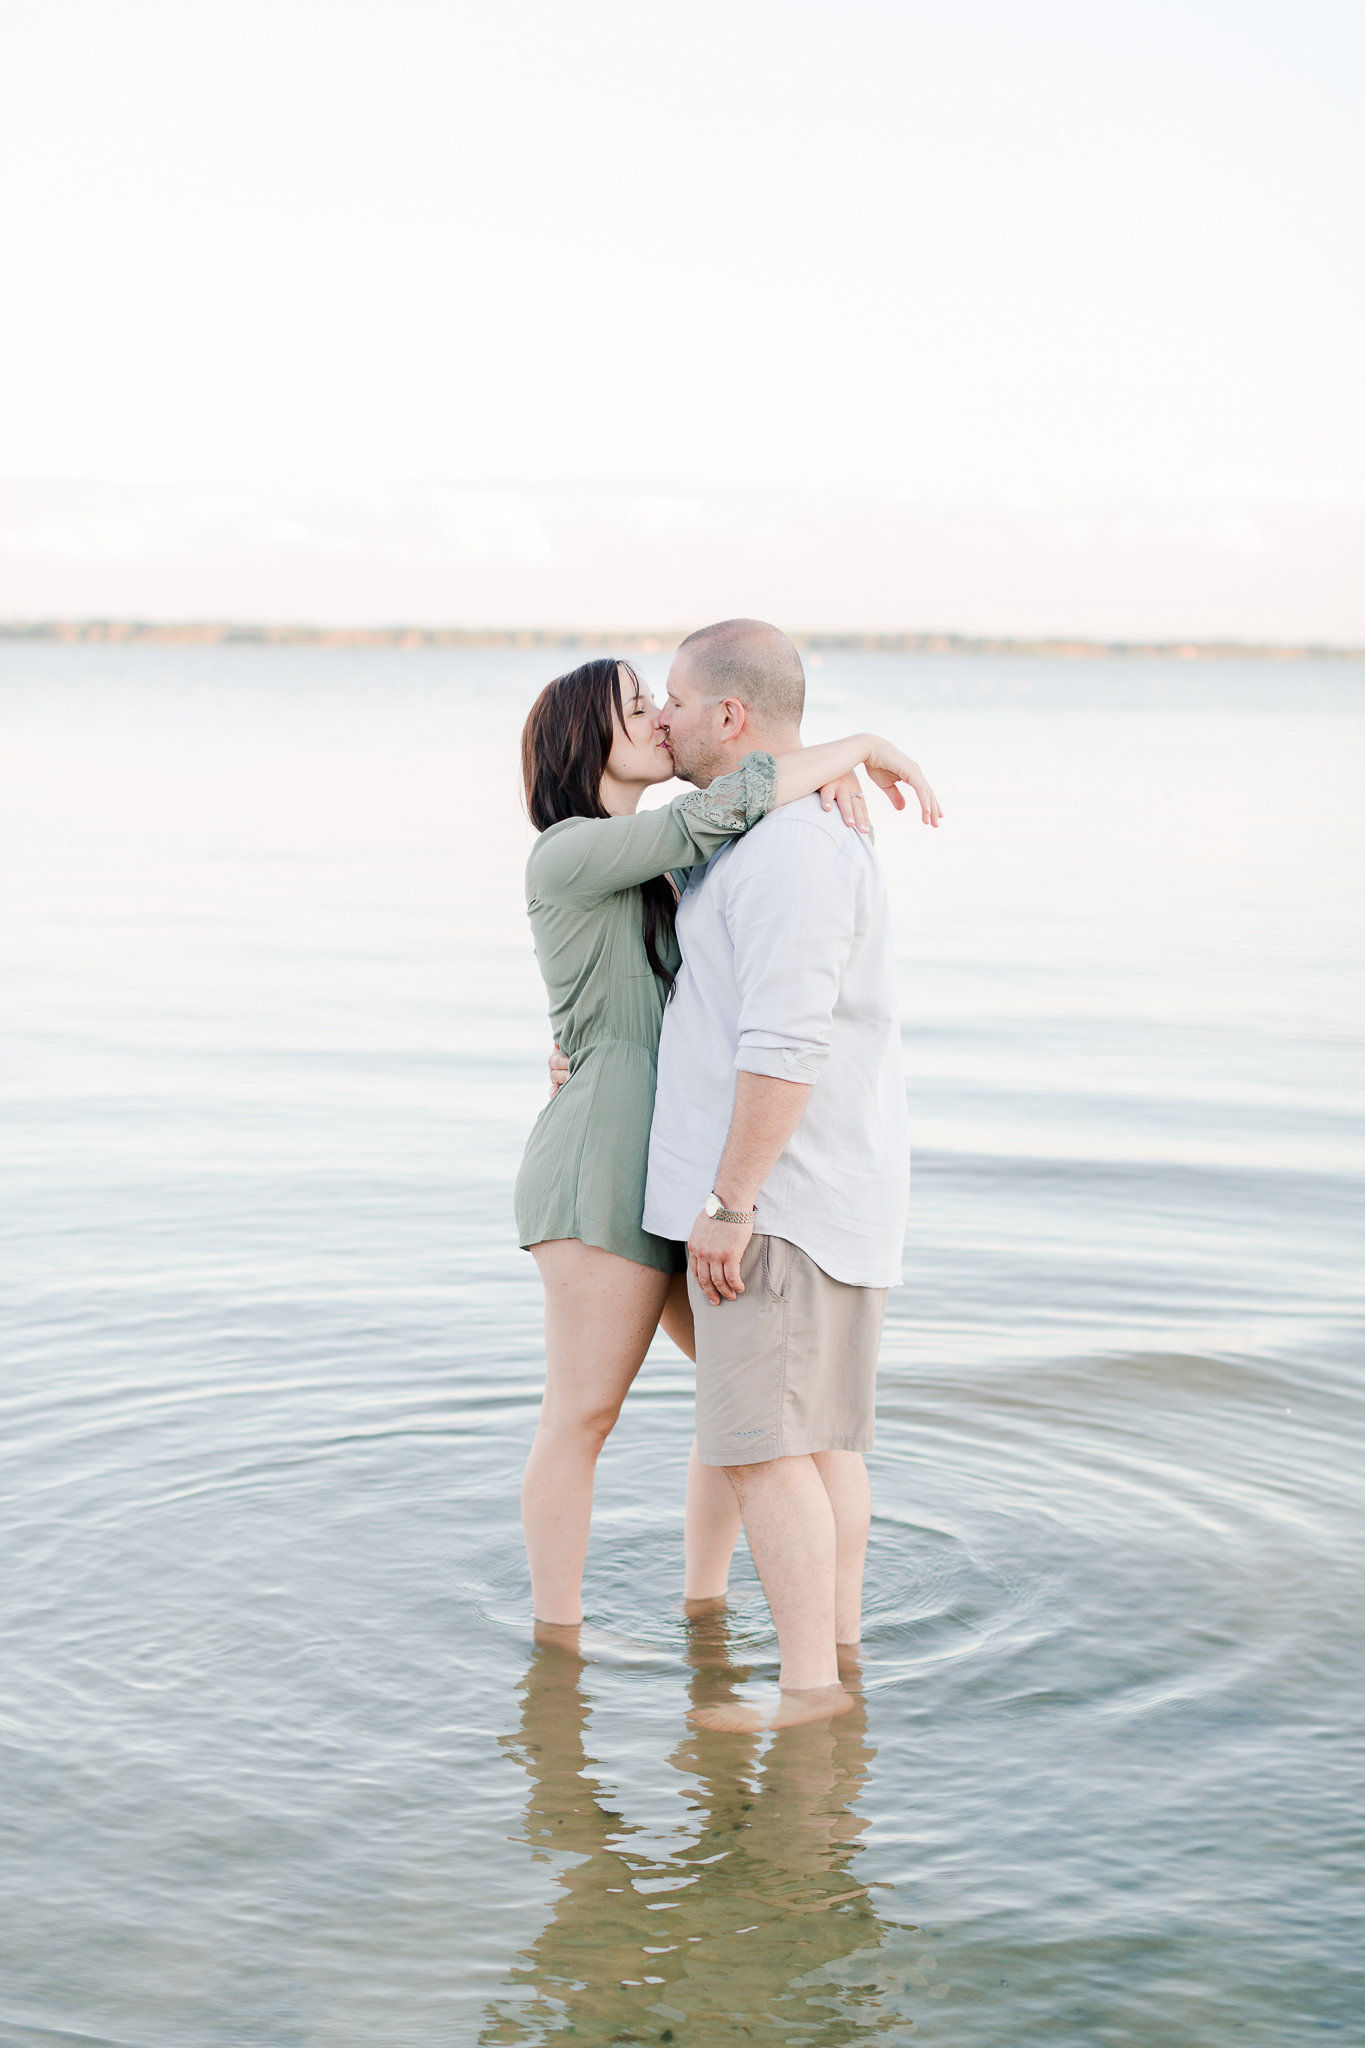 photographe-fiancailles-montreal-parc-national-oka-lisa-renault-photographie-beach-engagement-session-46